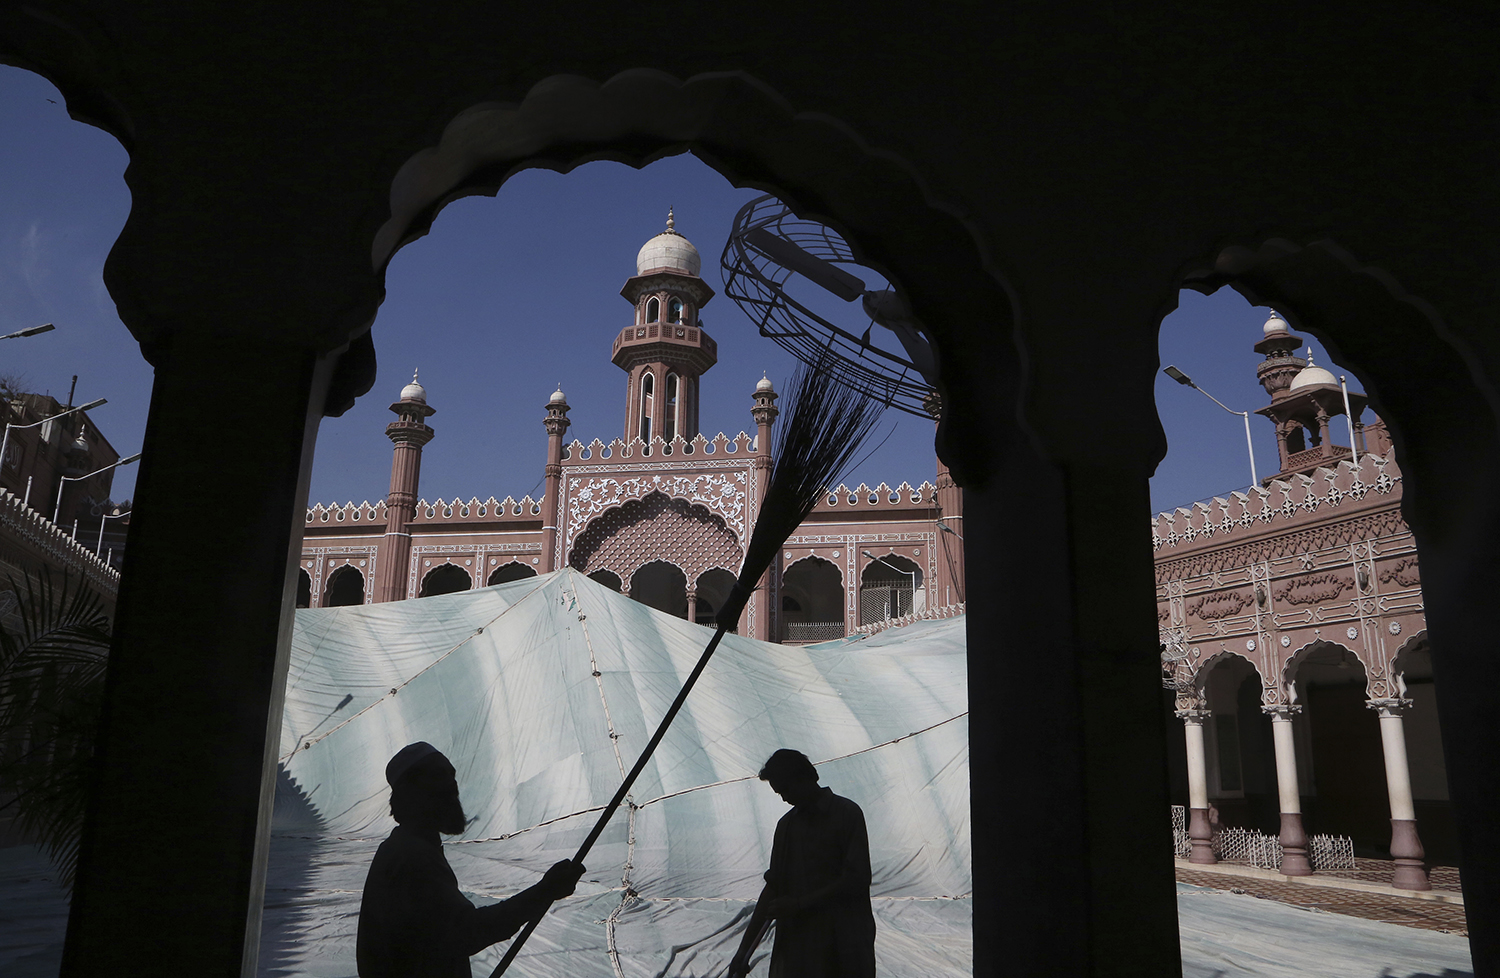 Volunteers clean the outer areas of a historical Mohabat Khan mosque ahead of the upcoming Muslim fasting month of Ramadan, in Peshawar, Pakistan, Friday, April 9, 2021. (AP Photo/Muhammad Sajjad)